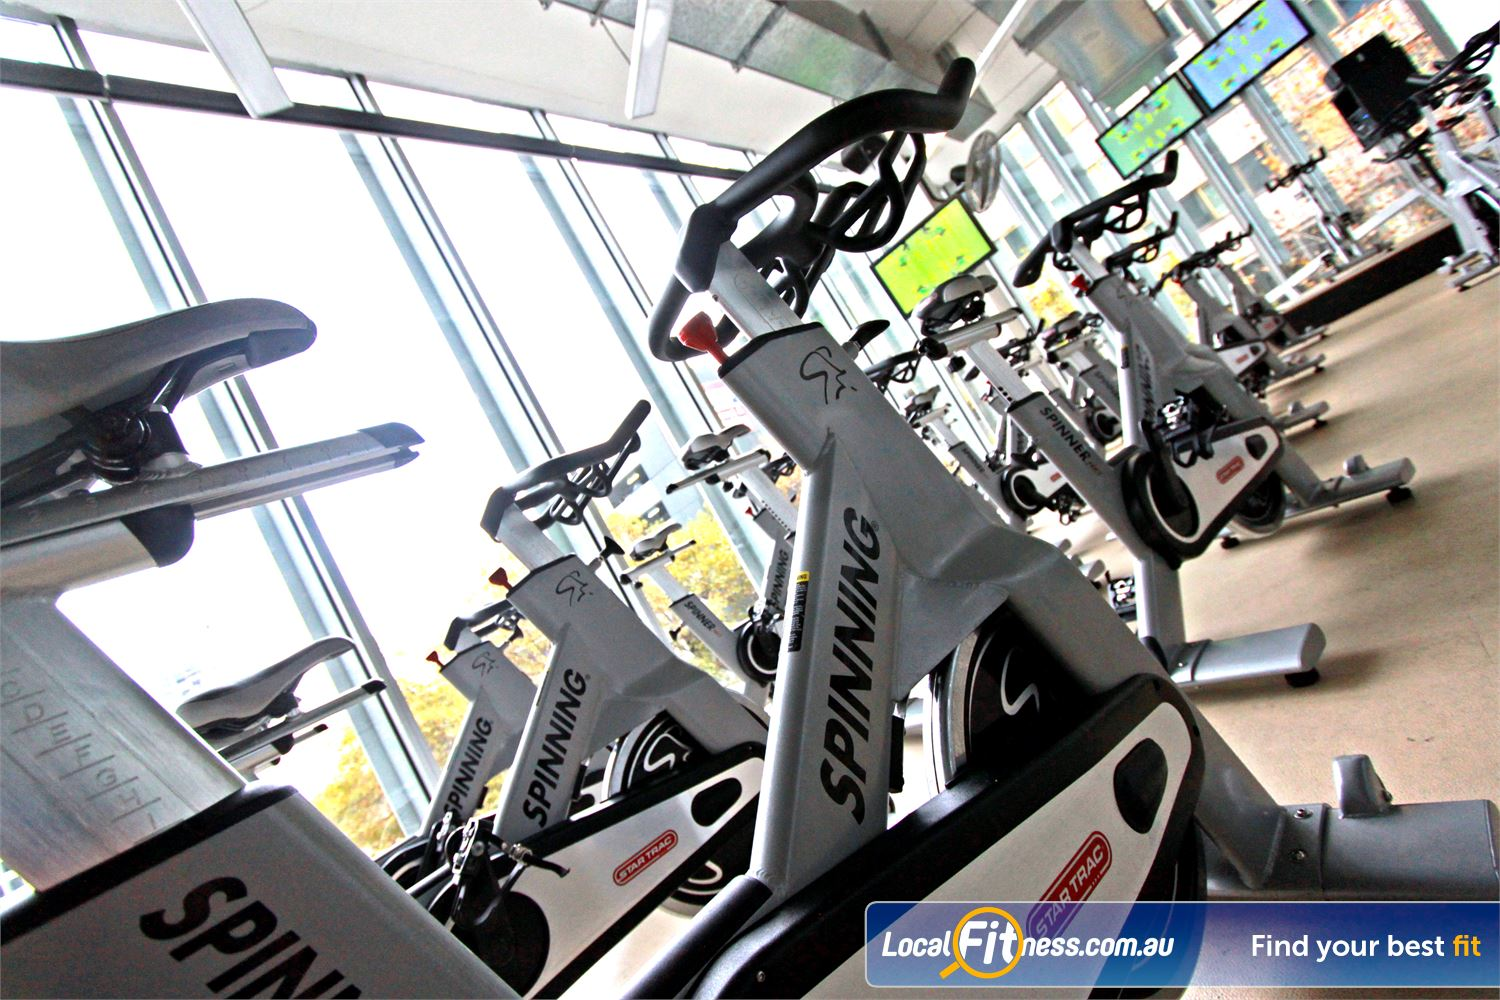 South Pacific Health Clubs Near East Melbourne State of the art spin cycle bikes from Star Trac.